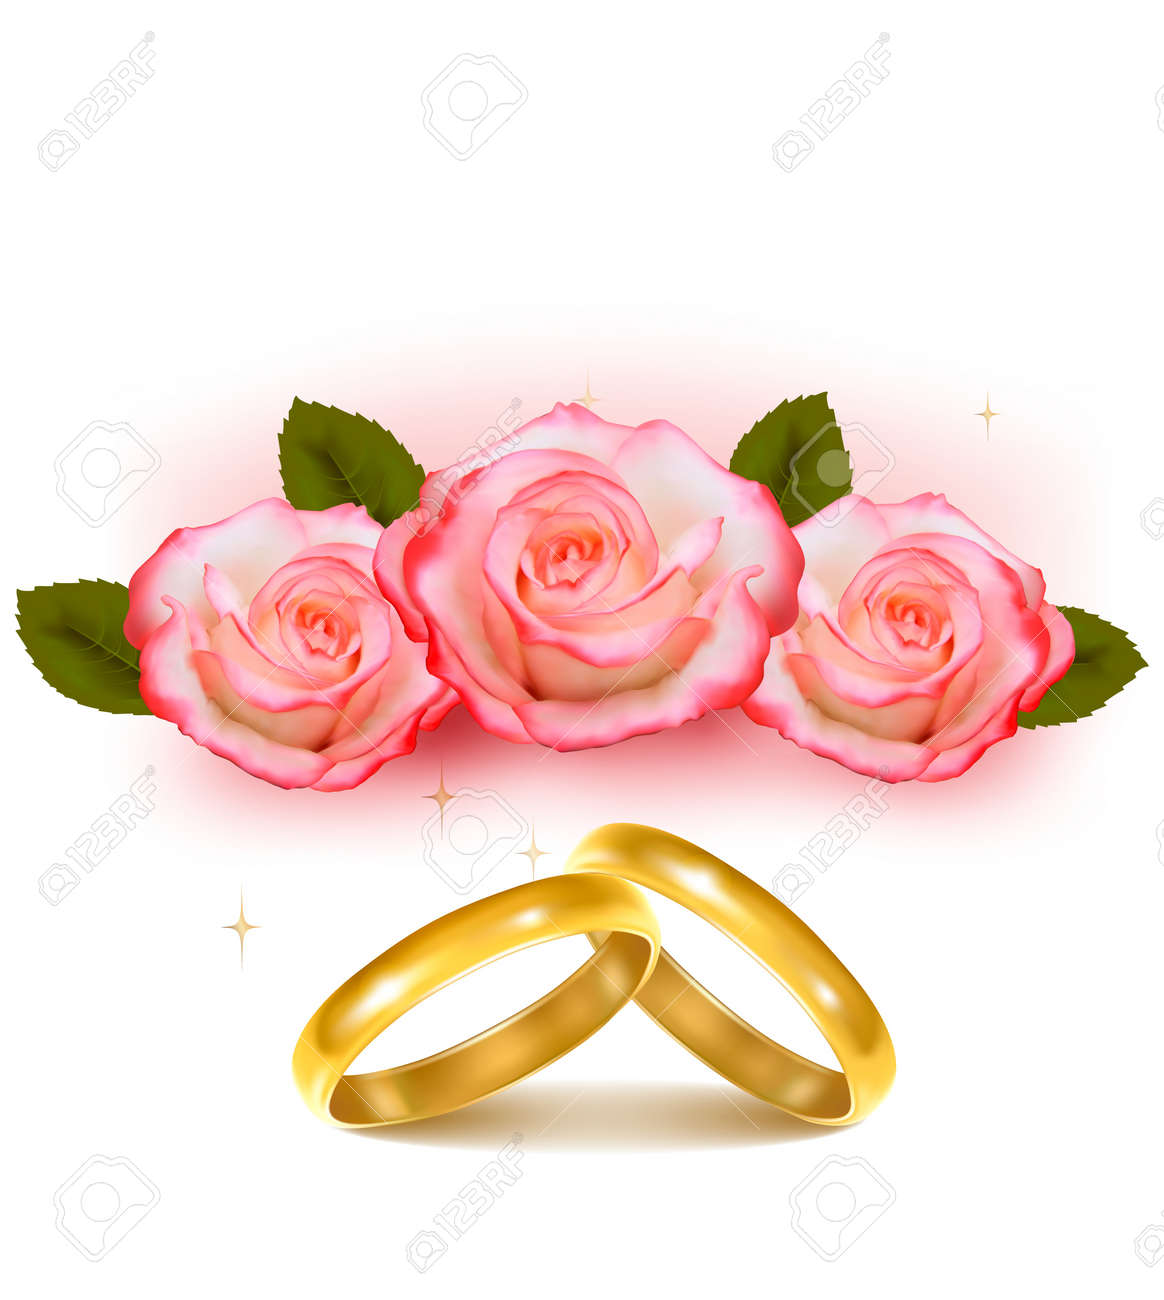 Gold Wedding Rings In Front Of Three Pink Roses Vector Royalty Free ...